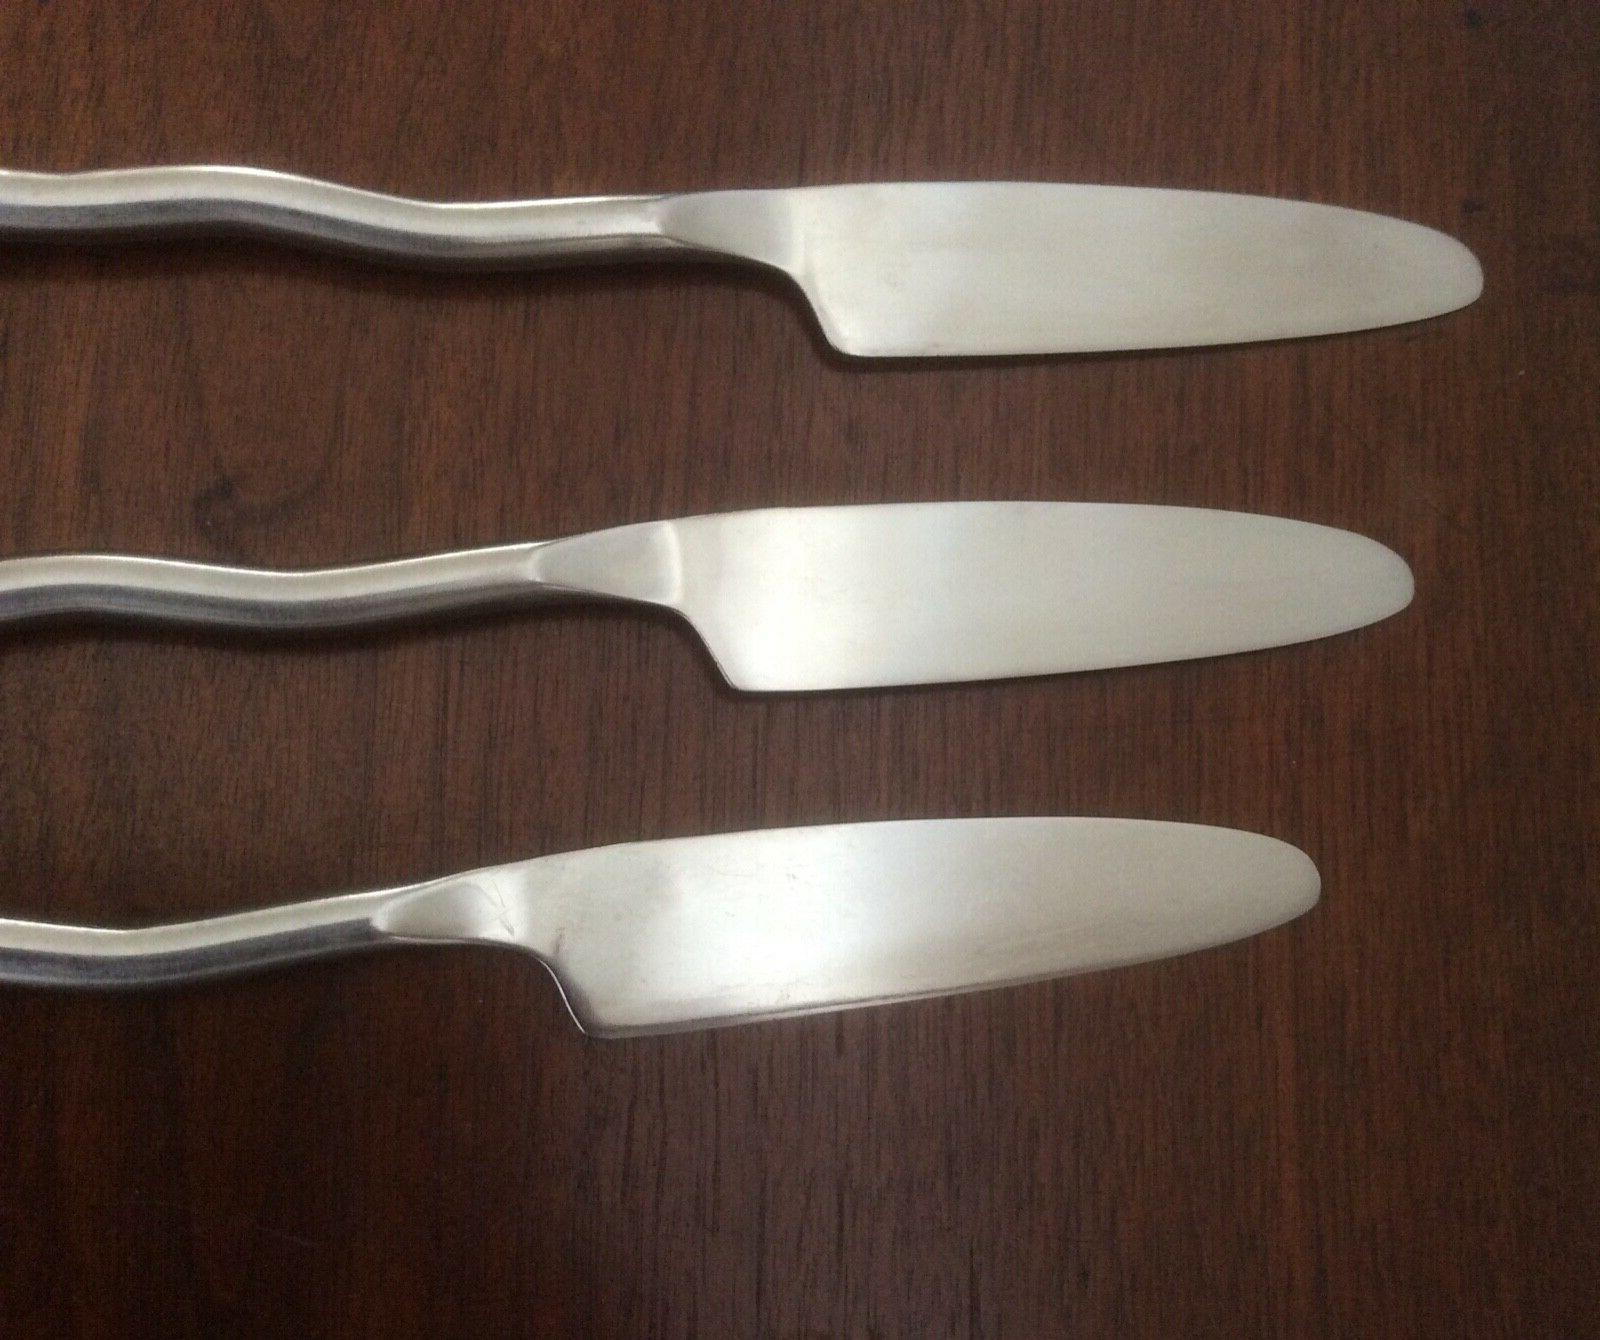 Gourmet Settings Stainless Flatware Spoons Knives